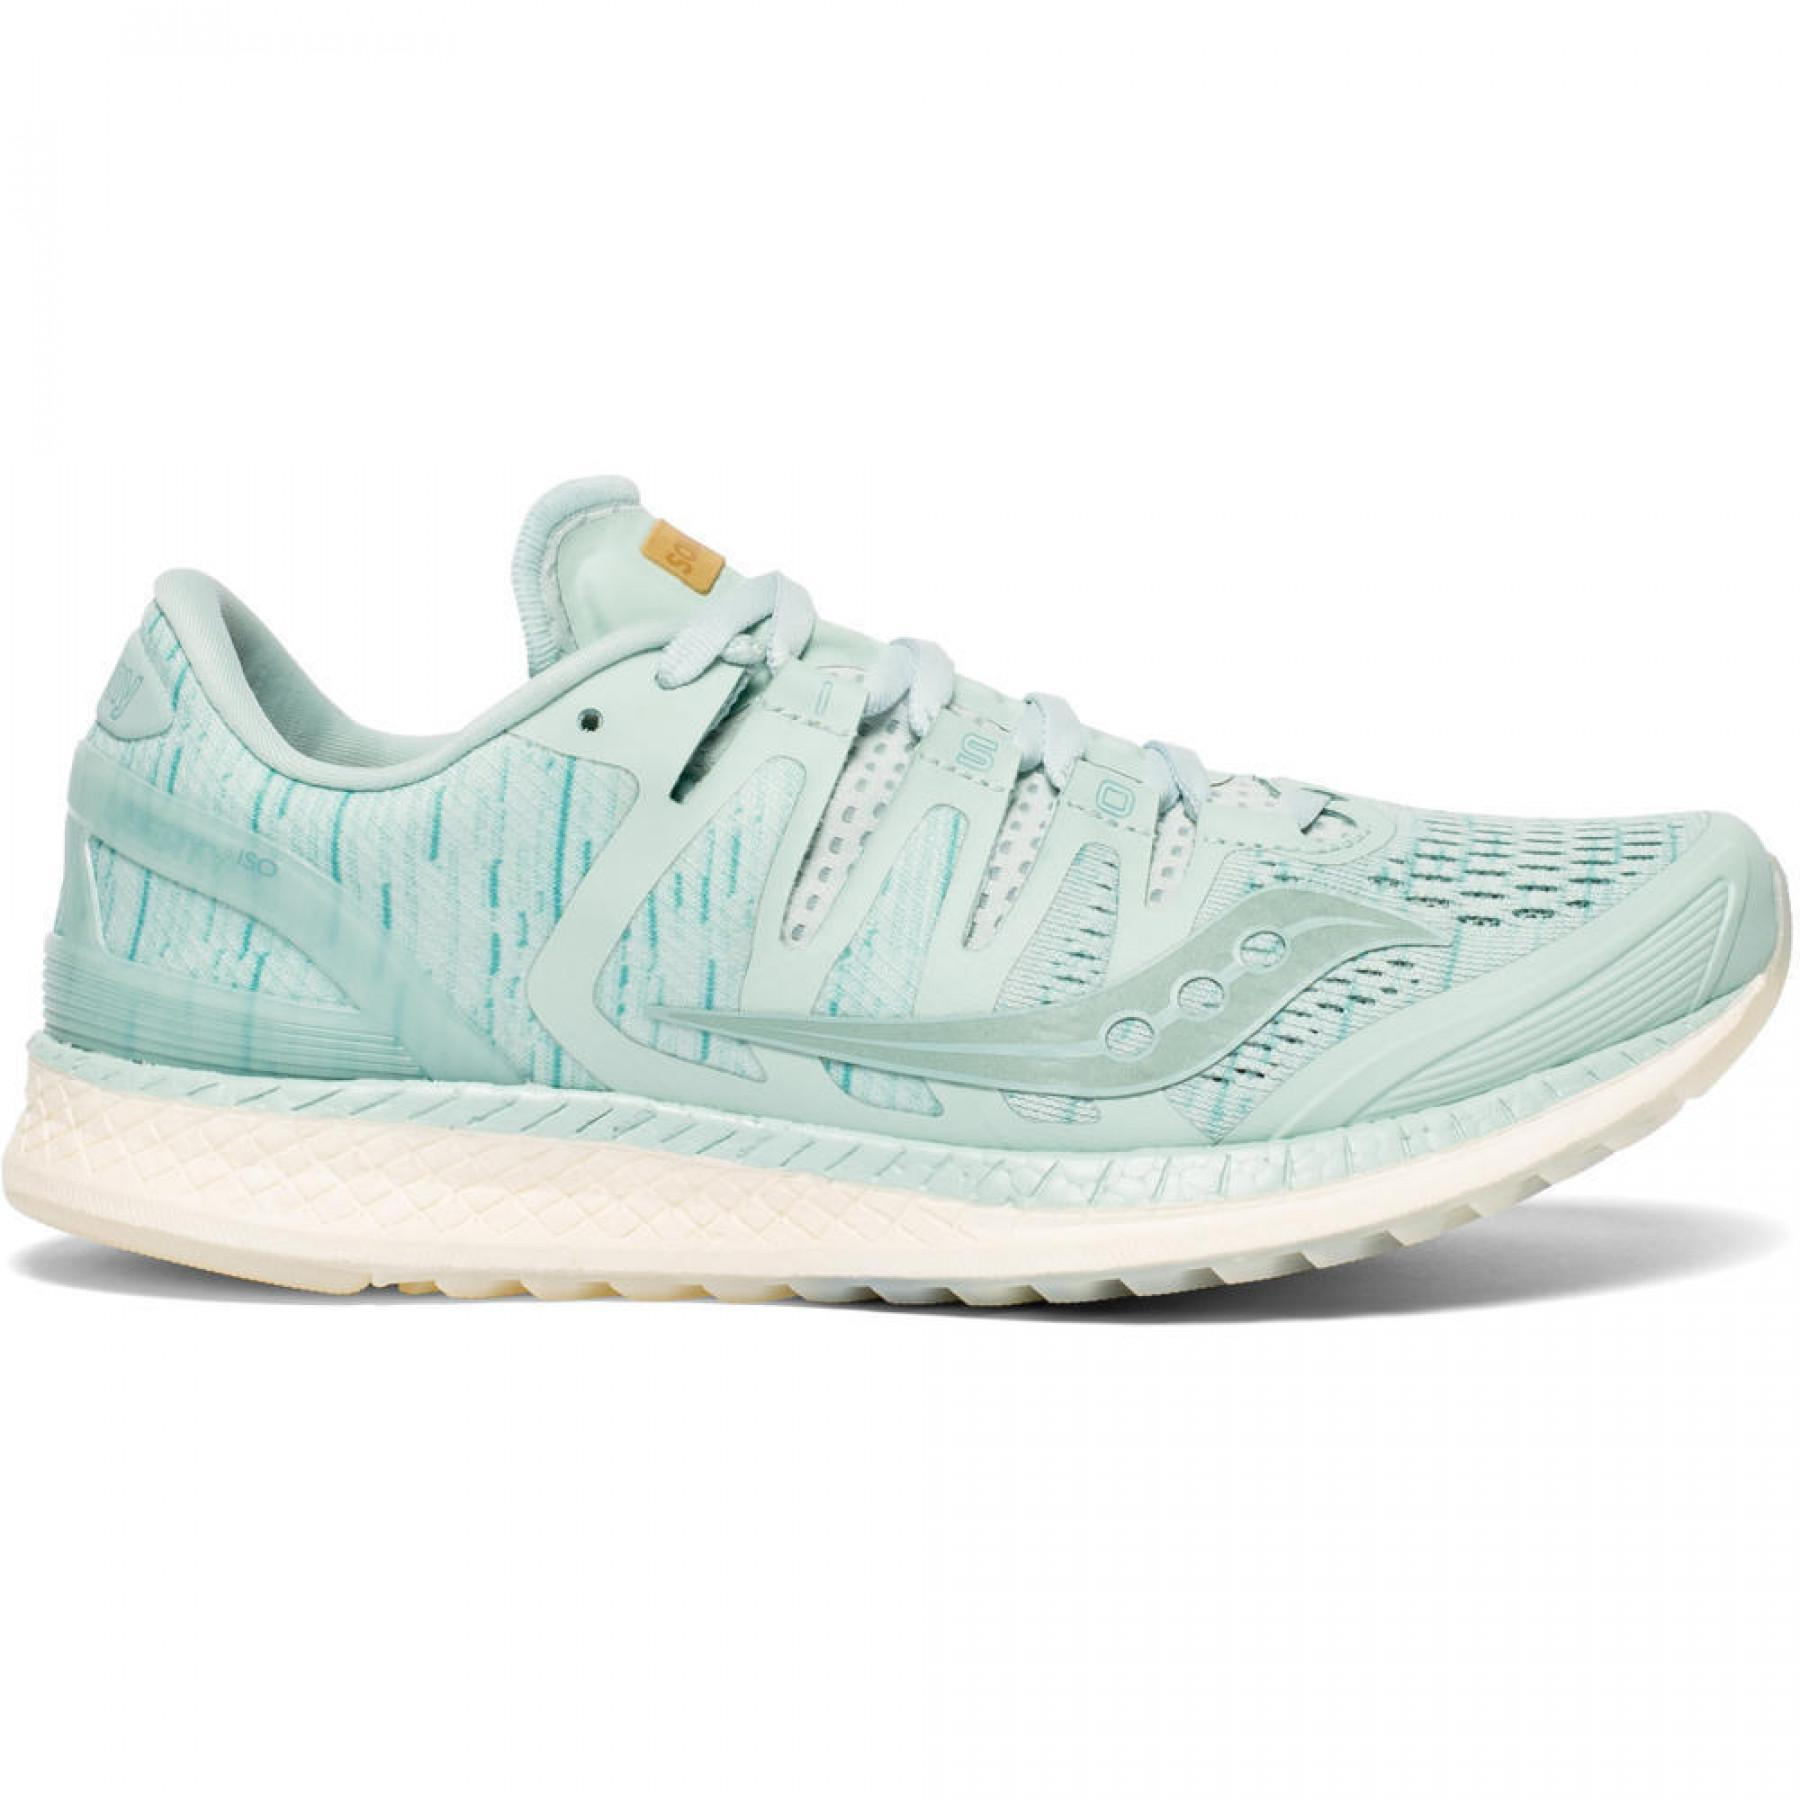 Chaussures femme Saucony Liberty ISO